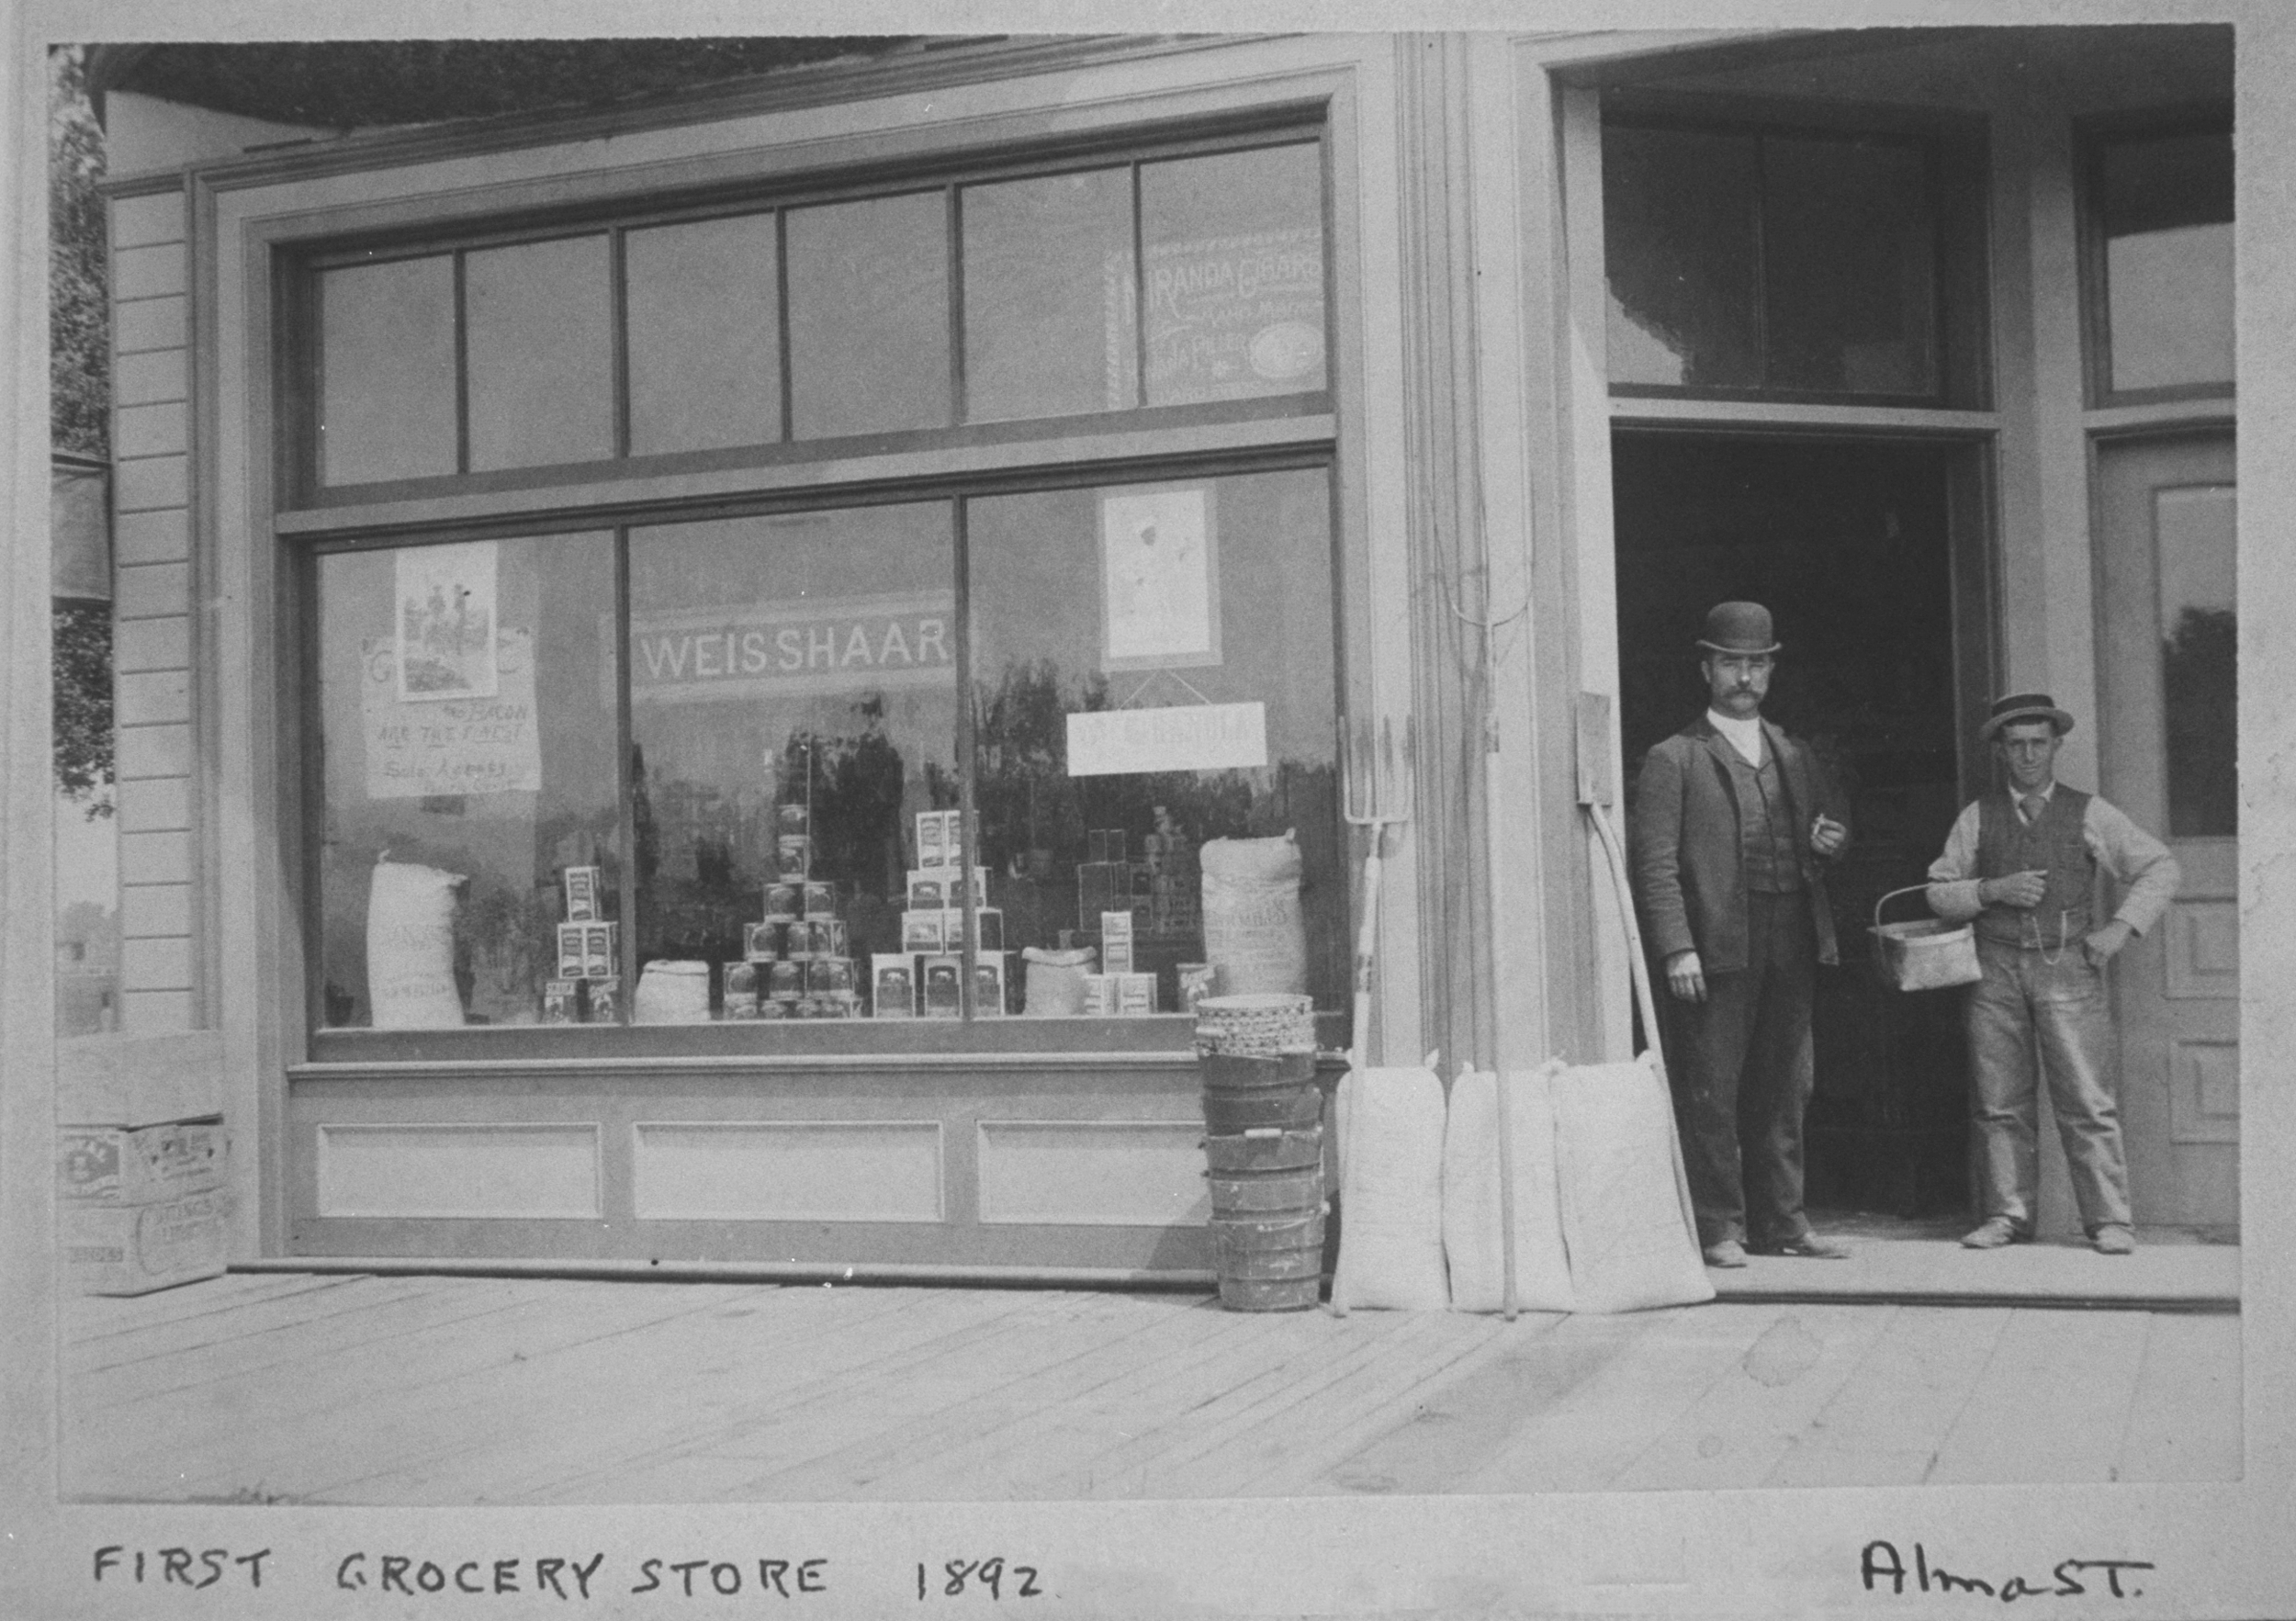 """Weisshaar"" grocery store in Palo Alto, 1892. Courtesy of PAHA."